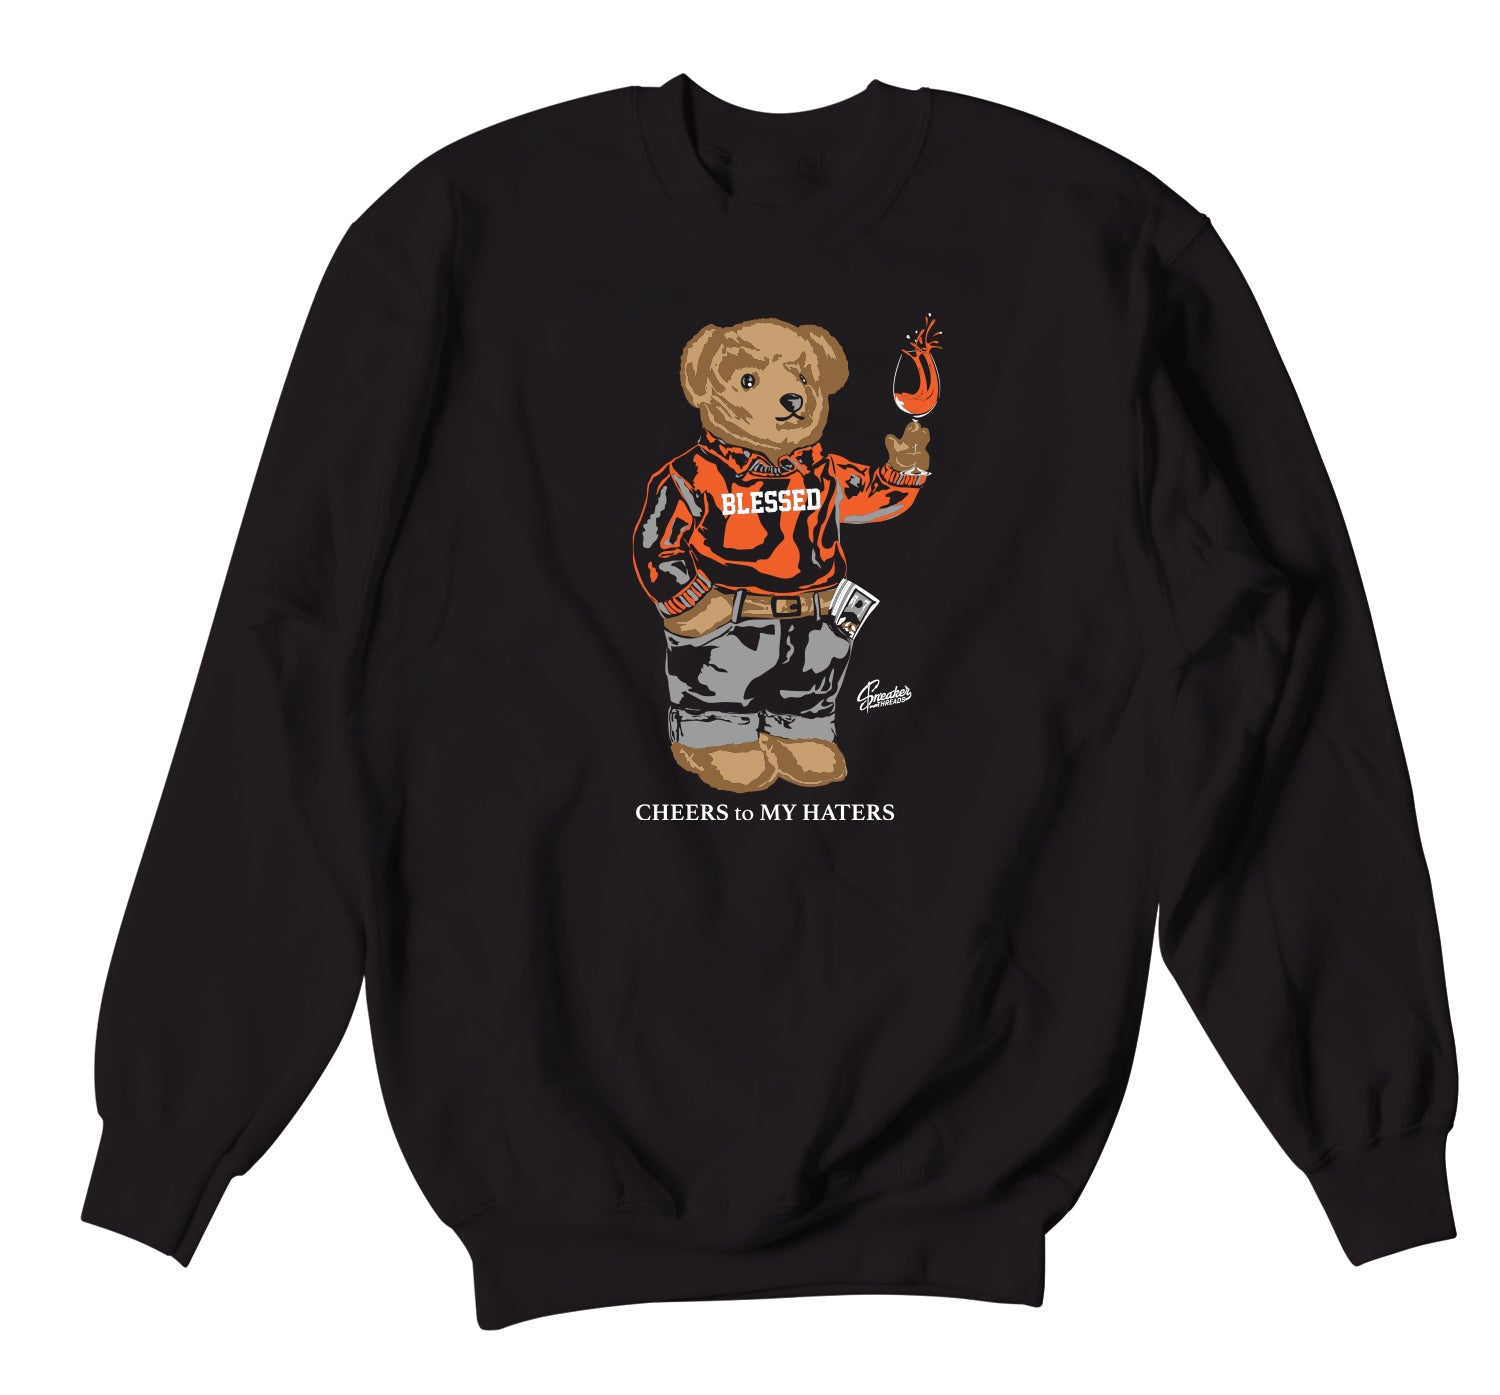 Foamposite Pro Halloween Sweater - Cheers Bear - Black